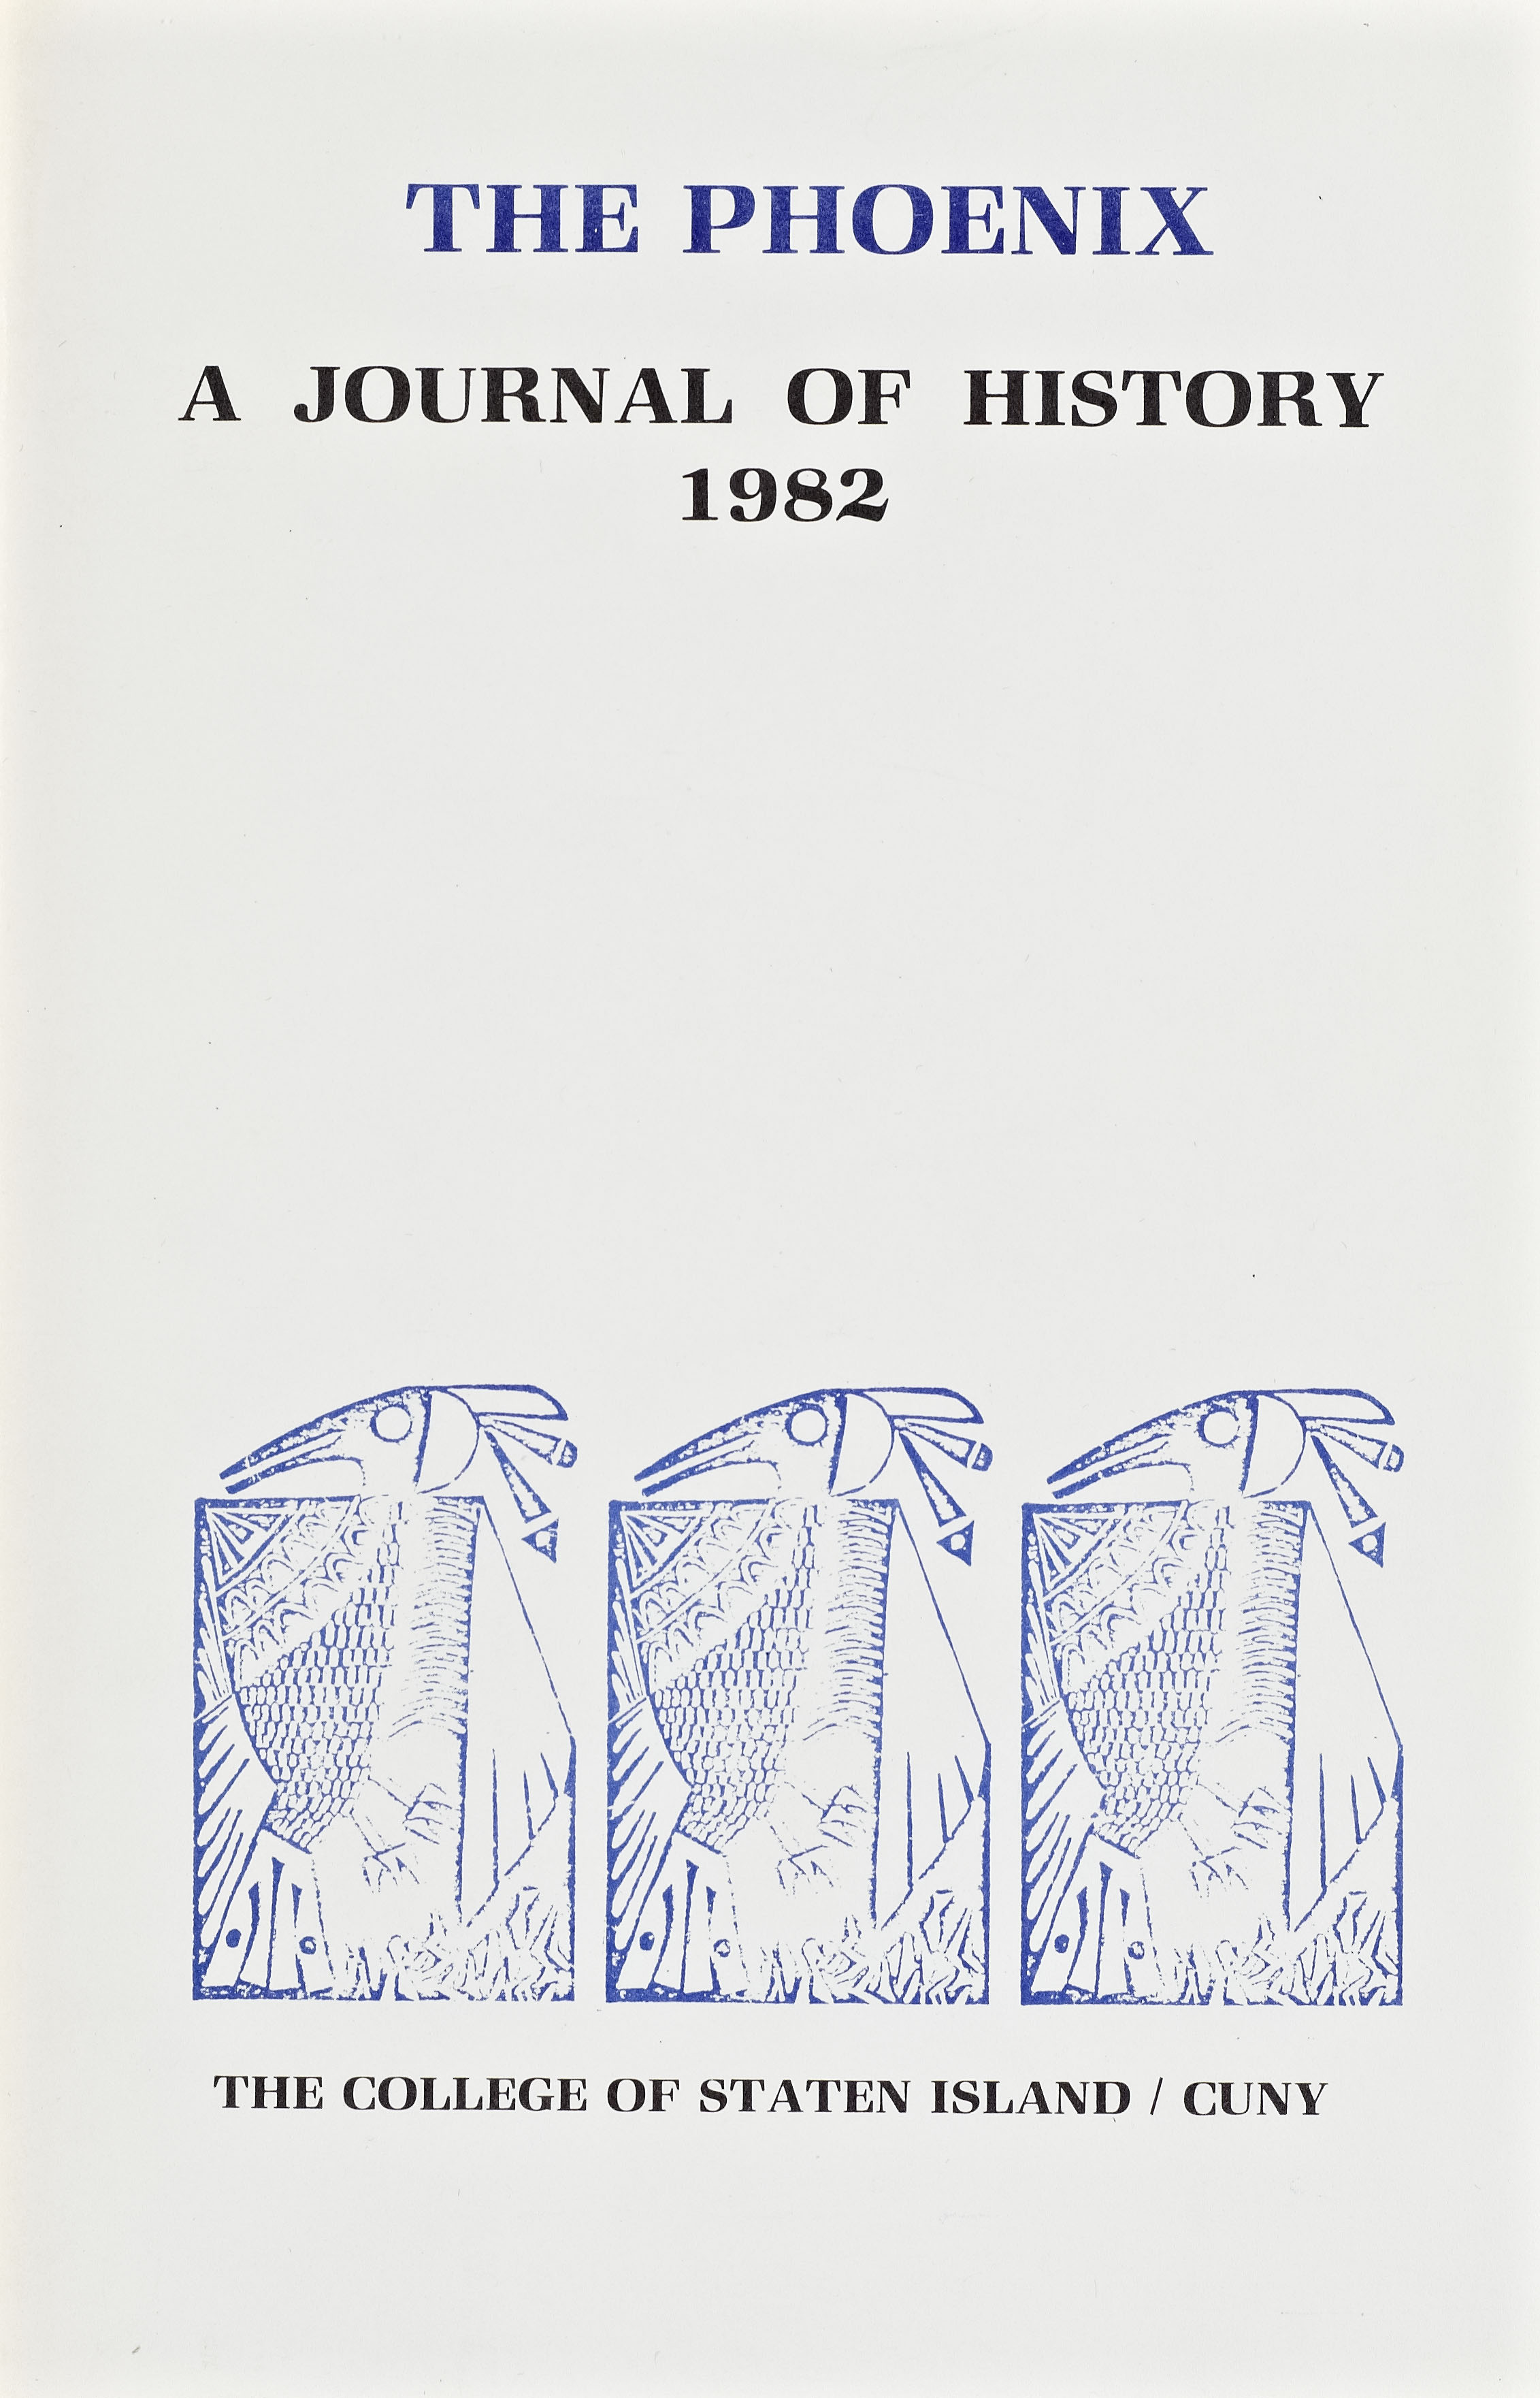 Cover image of the student publication The Phoenix: a Journal of History, 1982. Woodblock stamps of stylized phoenix-type bird.